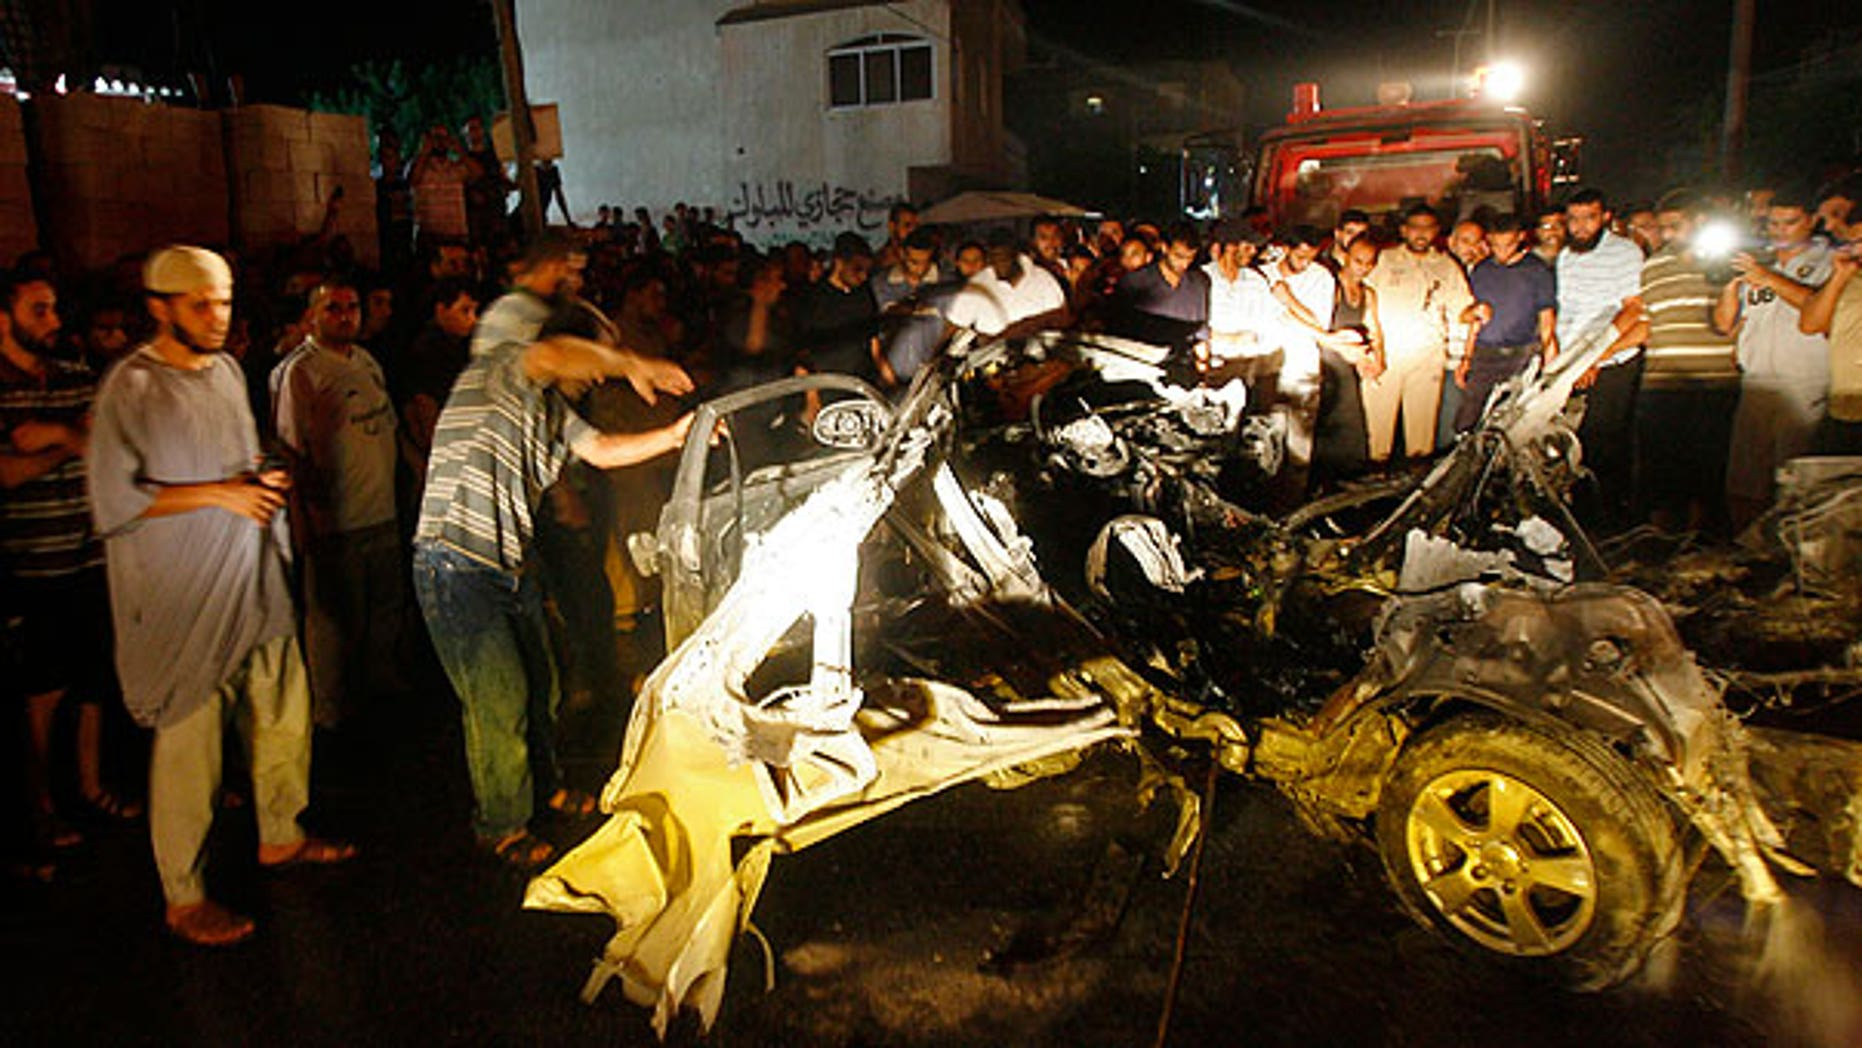 Aug. 24: Palestinians look at the wreckage of a car after it was hit by an Israeli missile, killing an Islamic Jihad militant in Rafah, southern Gaza Strip.